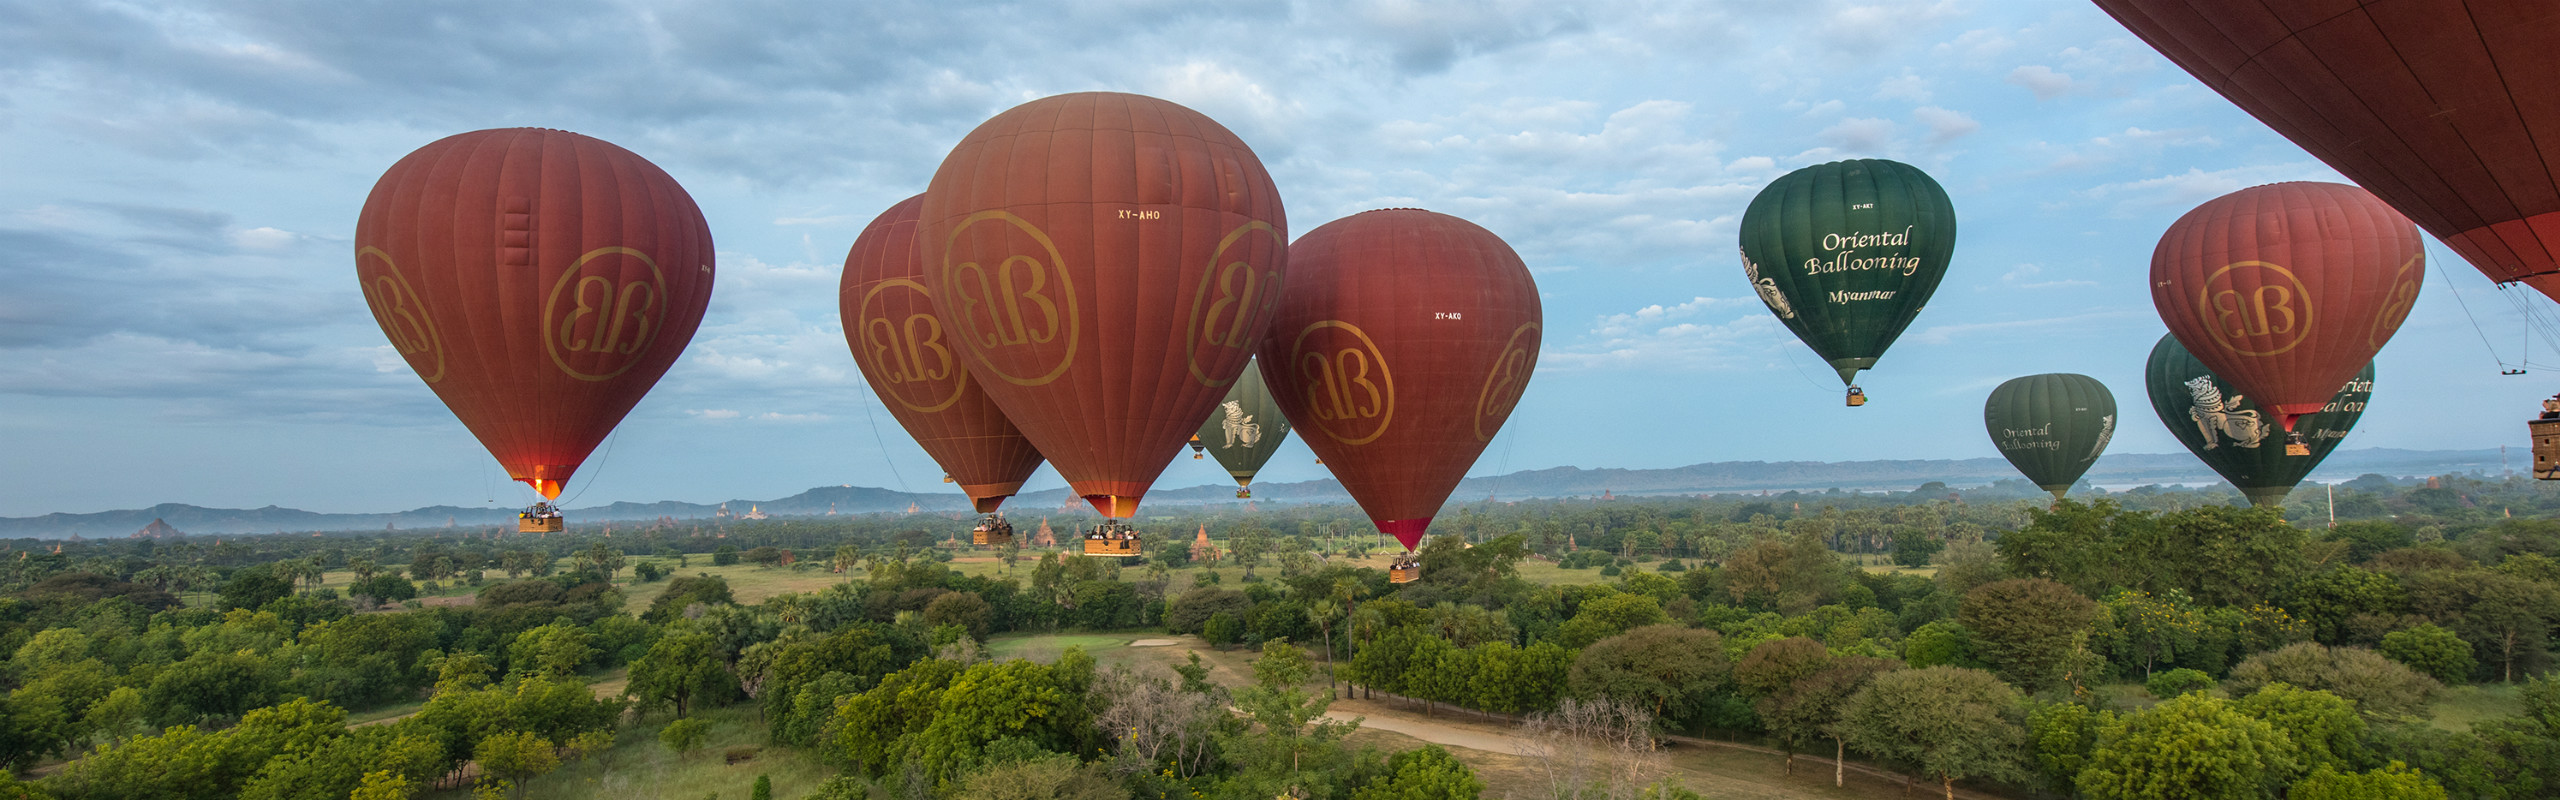 Balloon Flights Over Bagan - Fly towards the Rising Sun